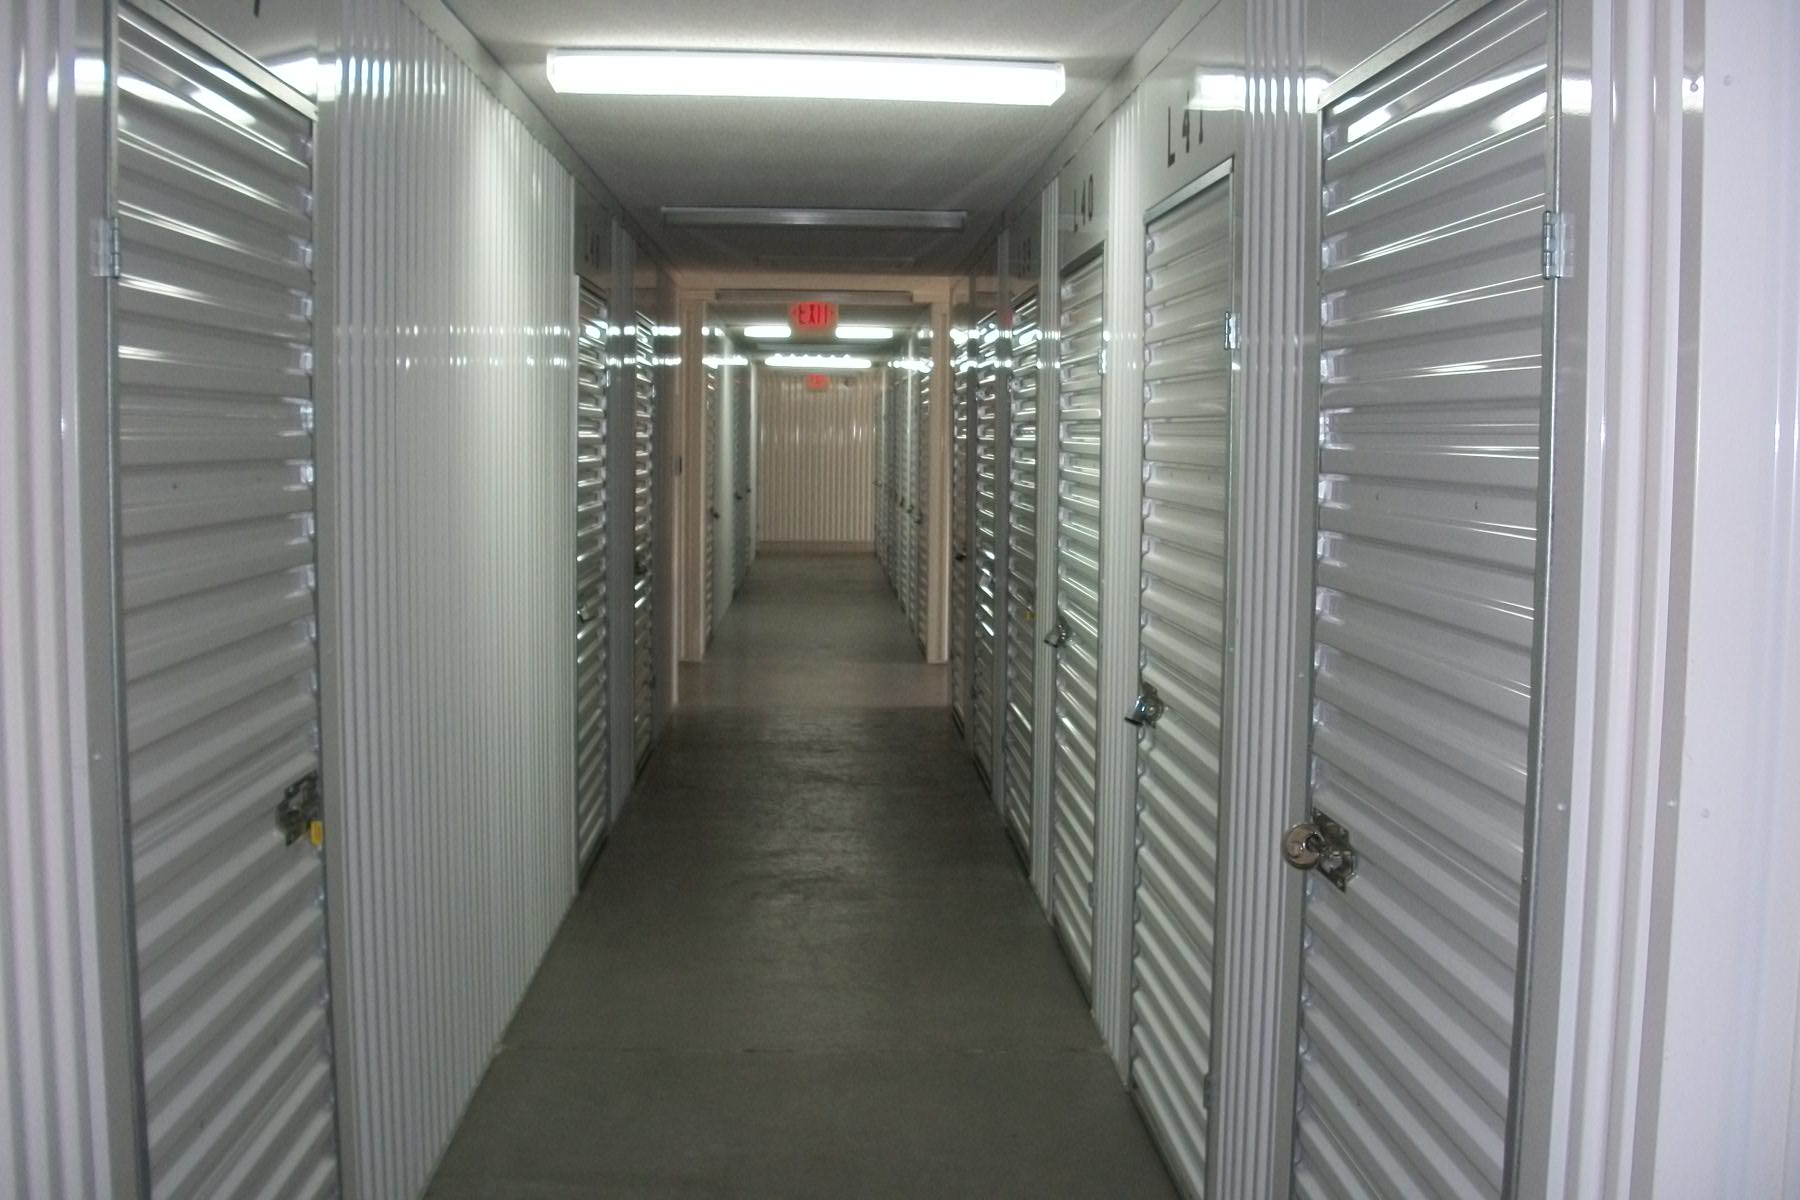 small hallway secure door locks Security Self Storage